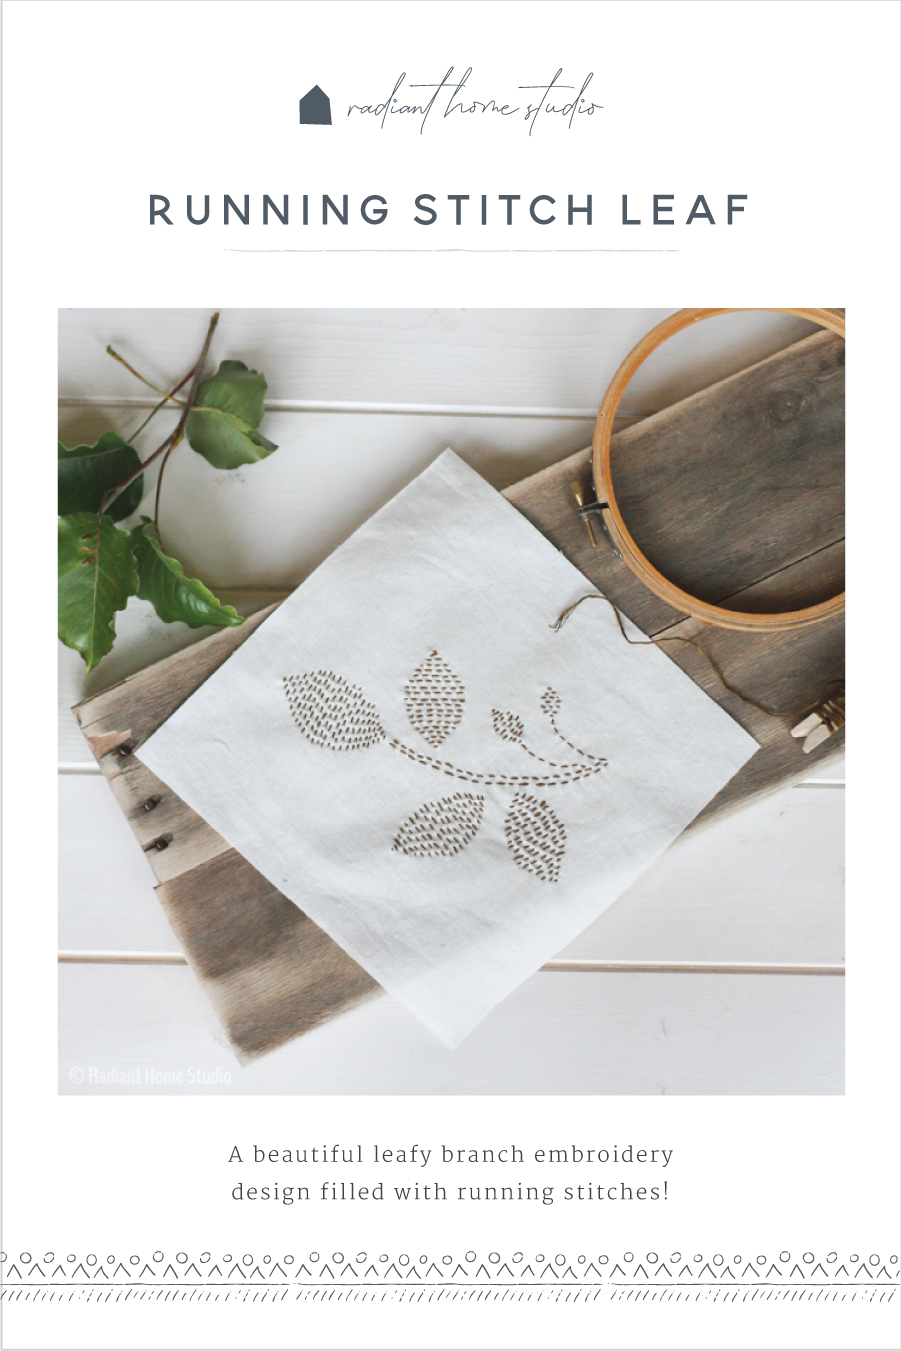 Running Stitch Leaf Embroidery | Radiant Home Studio